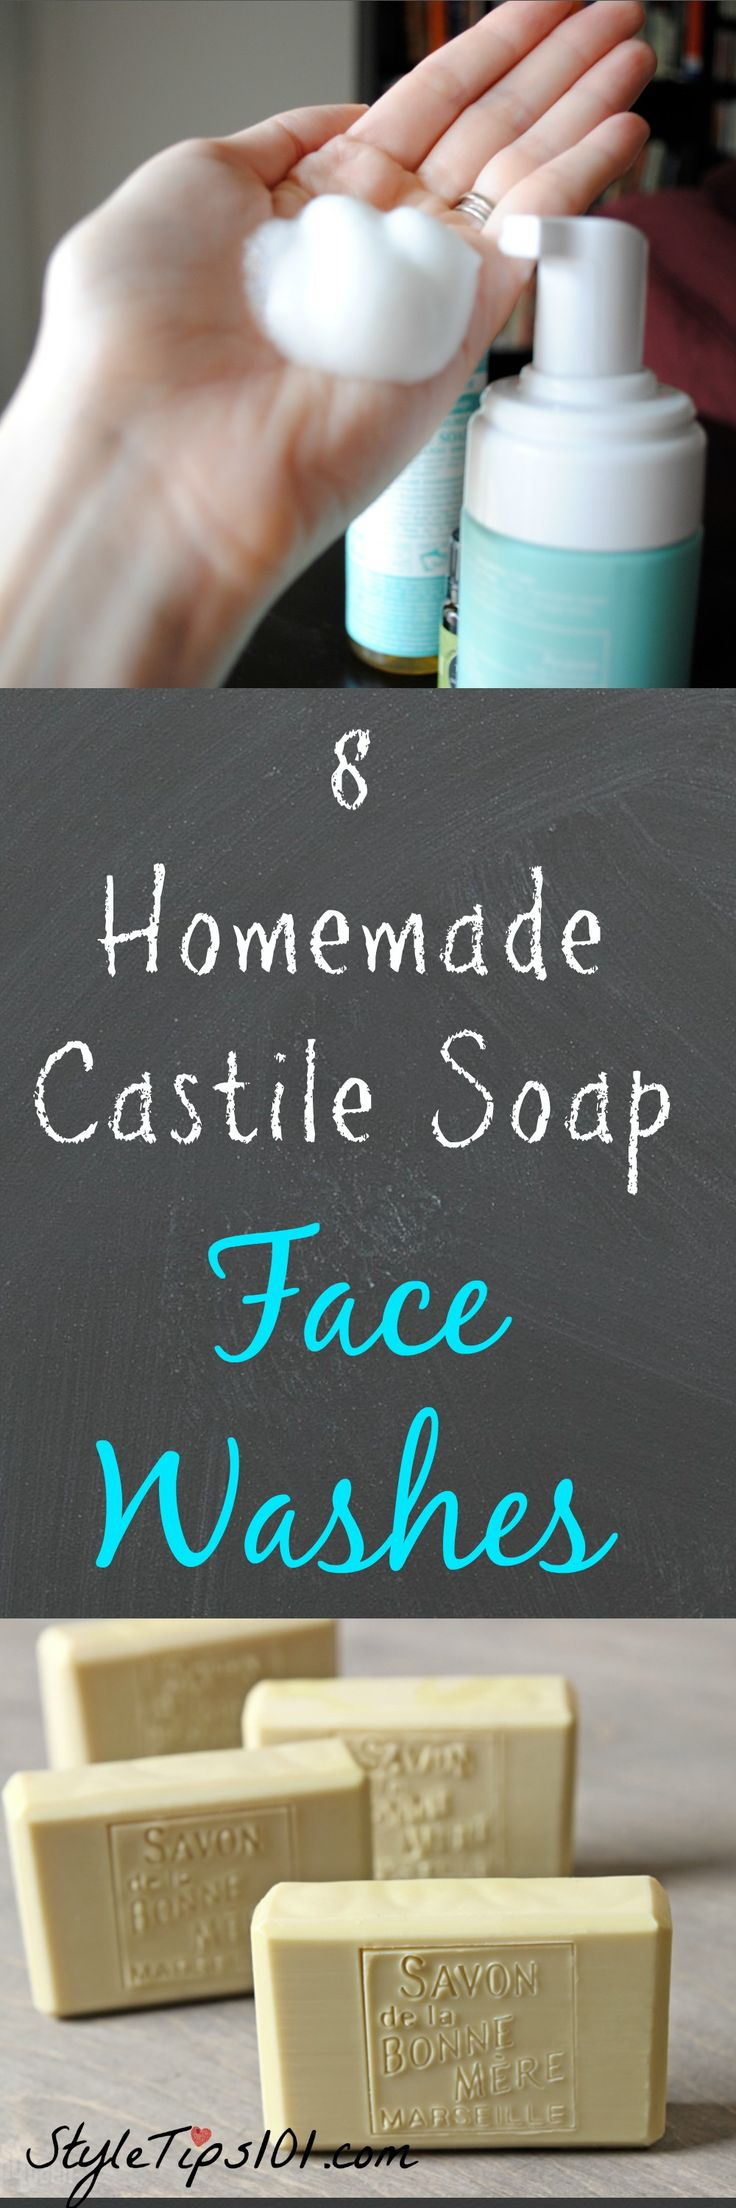 There's a face wash recipe for every type of skin